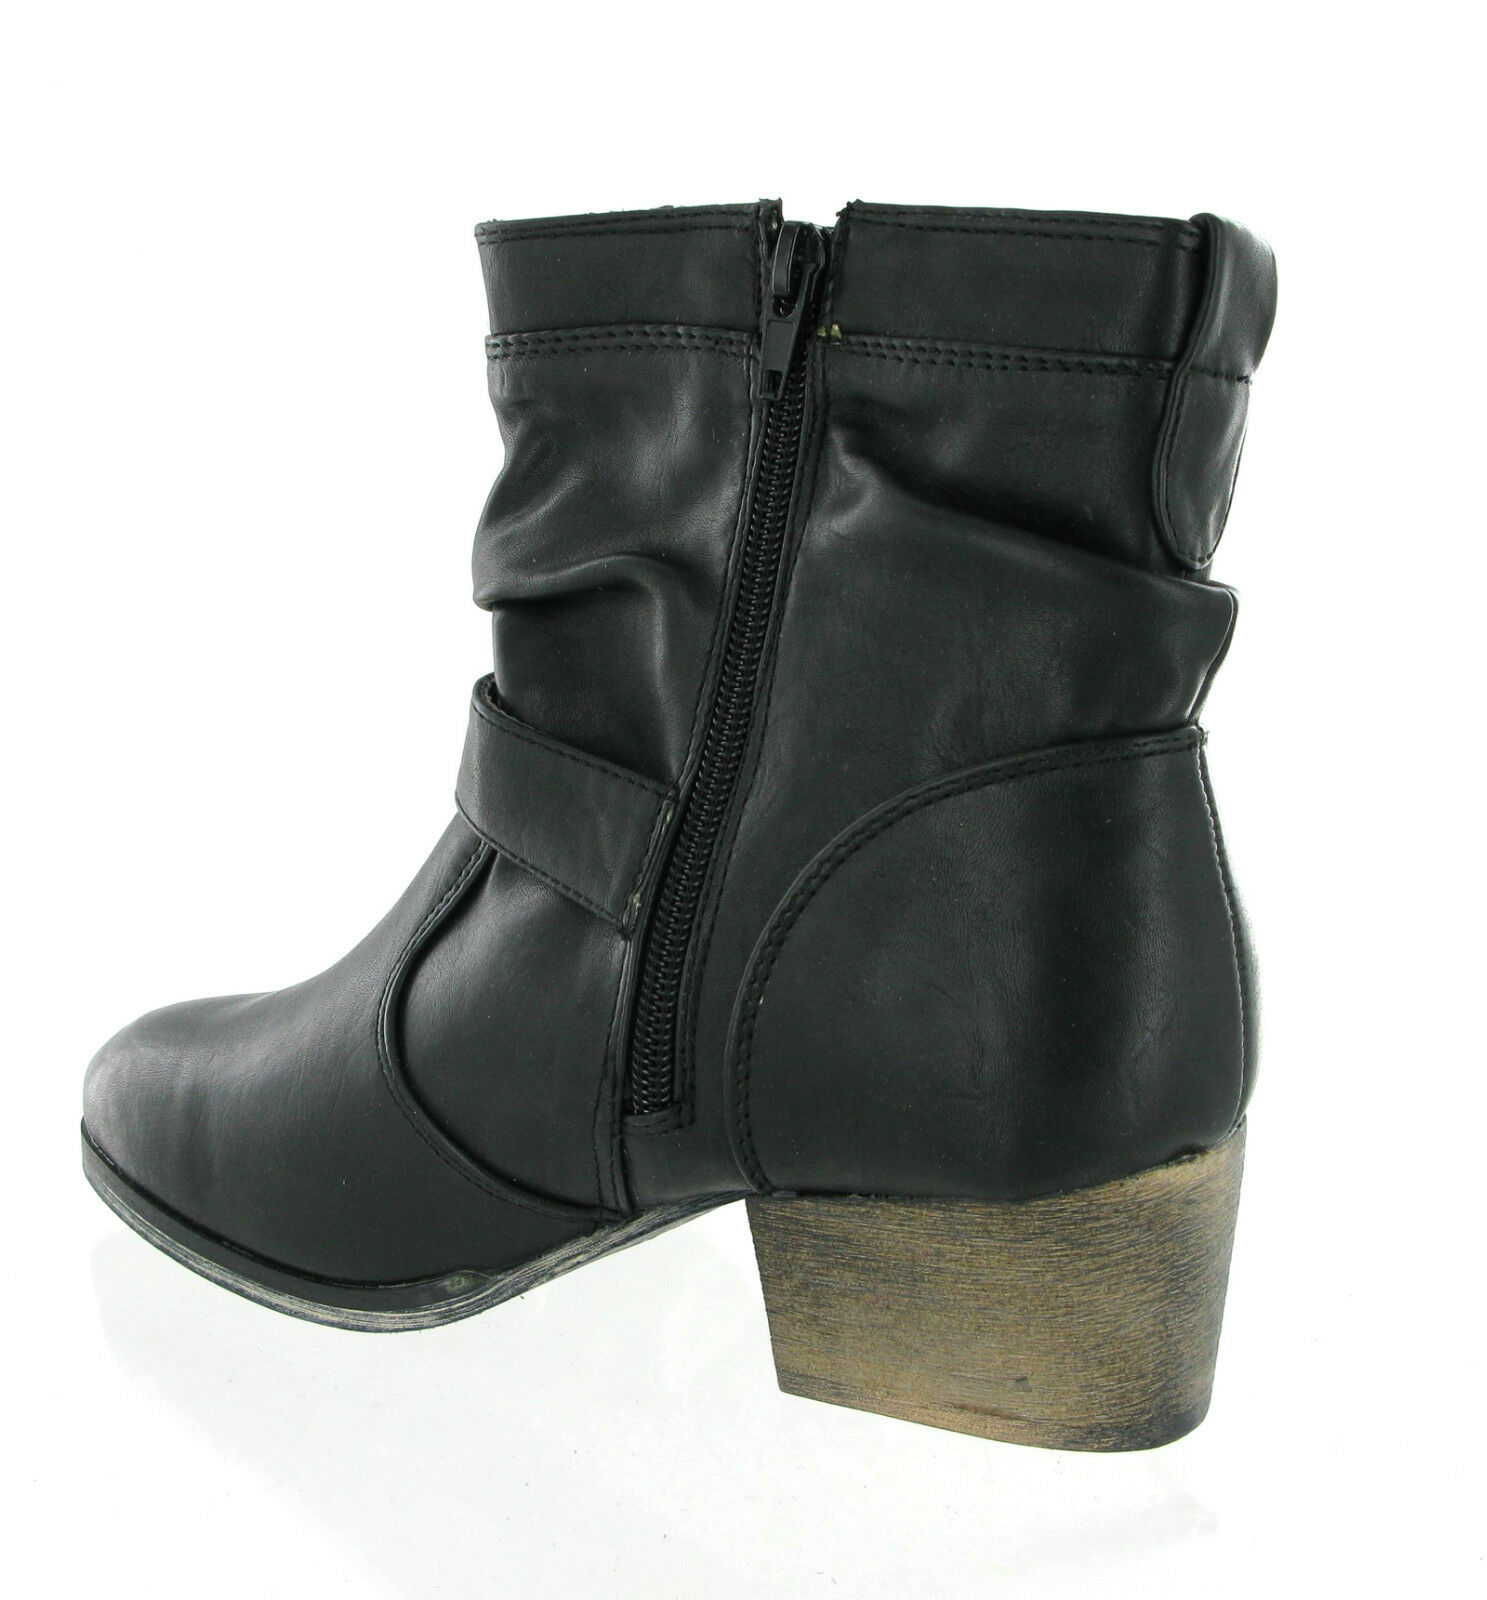 Fashion Womens Cowboy Buckle Ankle Casual Zip Up Block Heel Boots UK 3-8